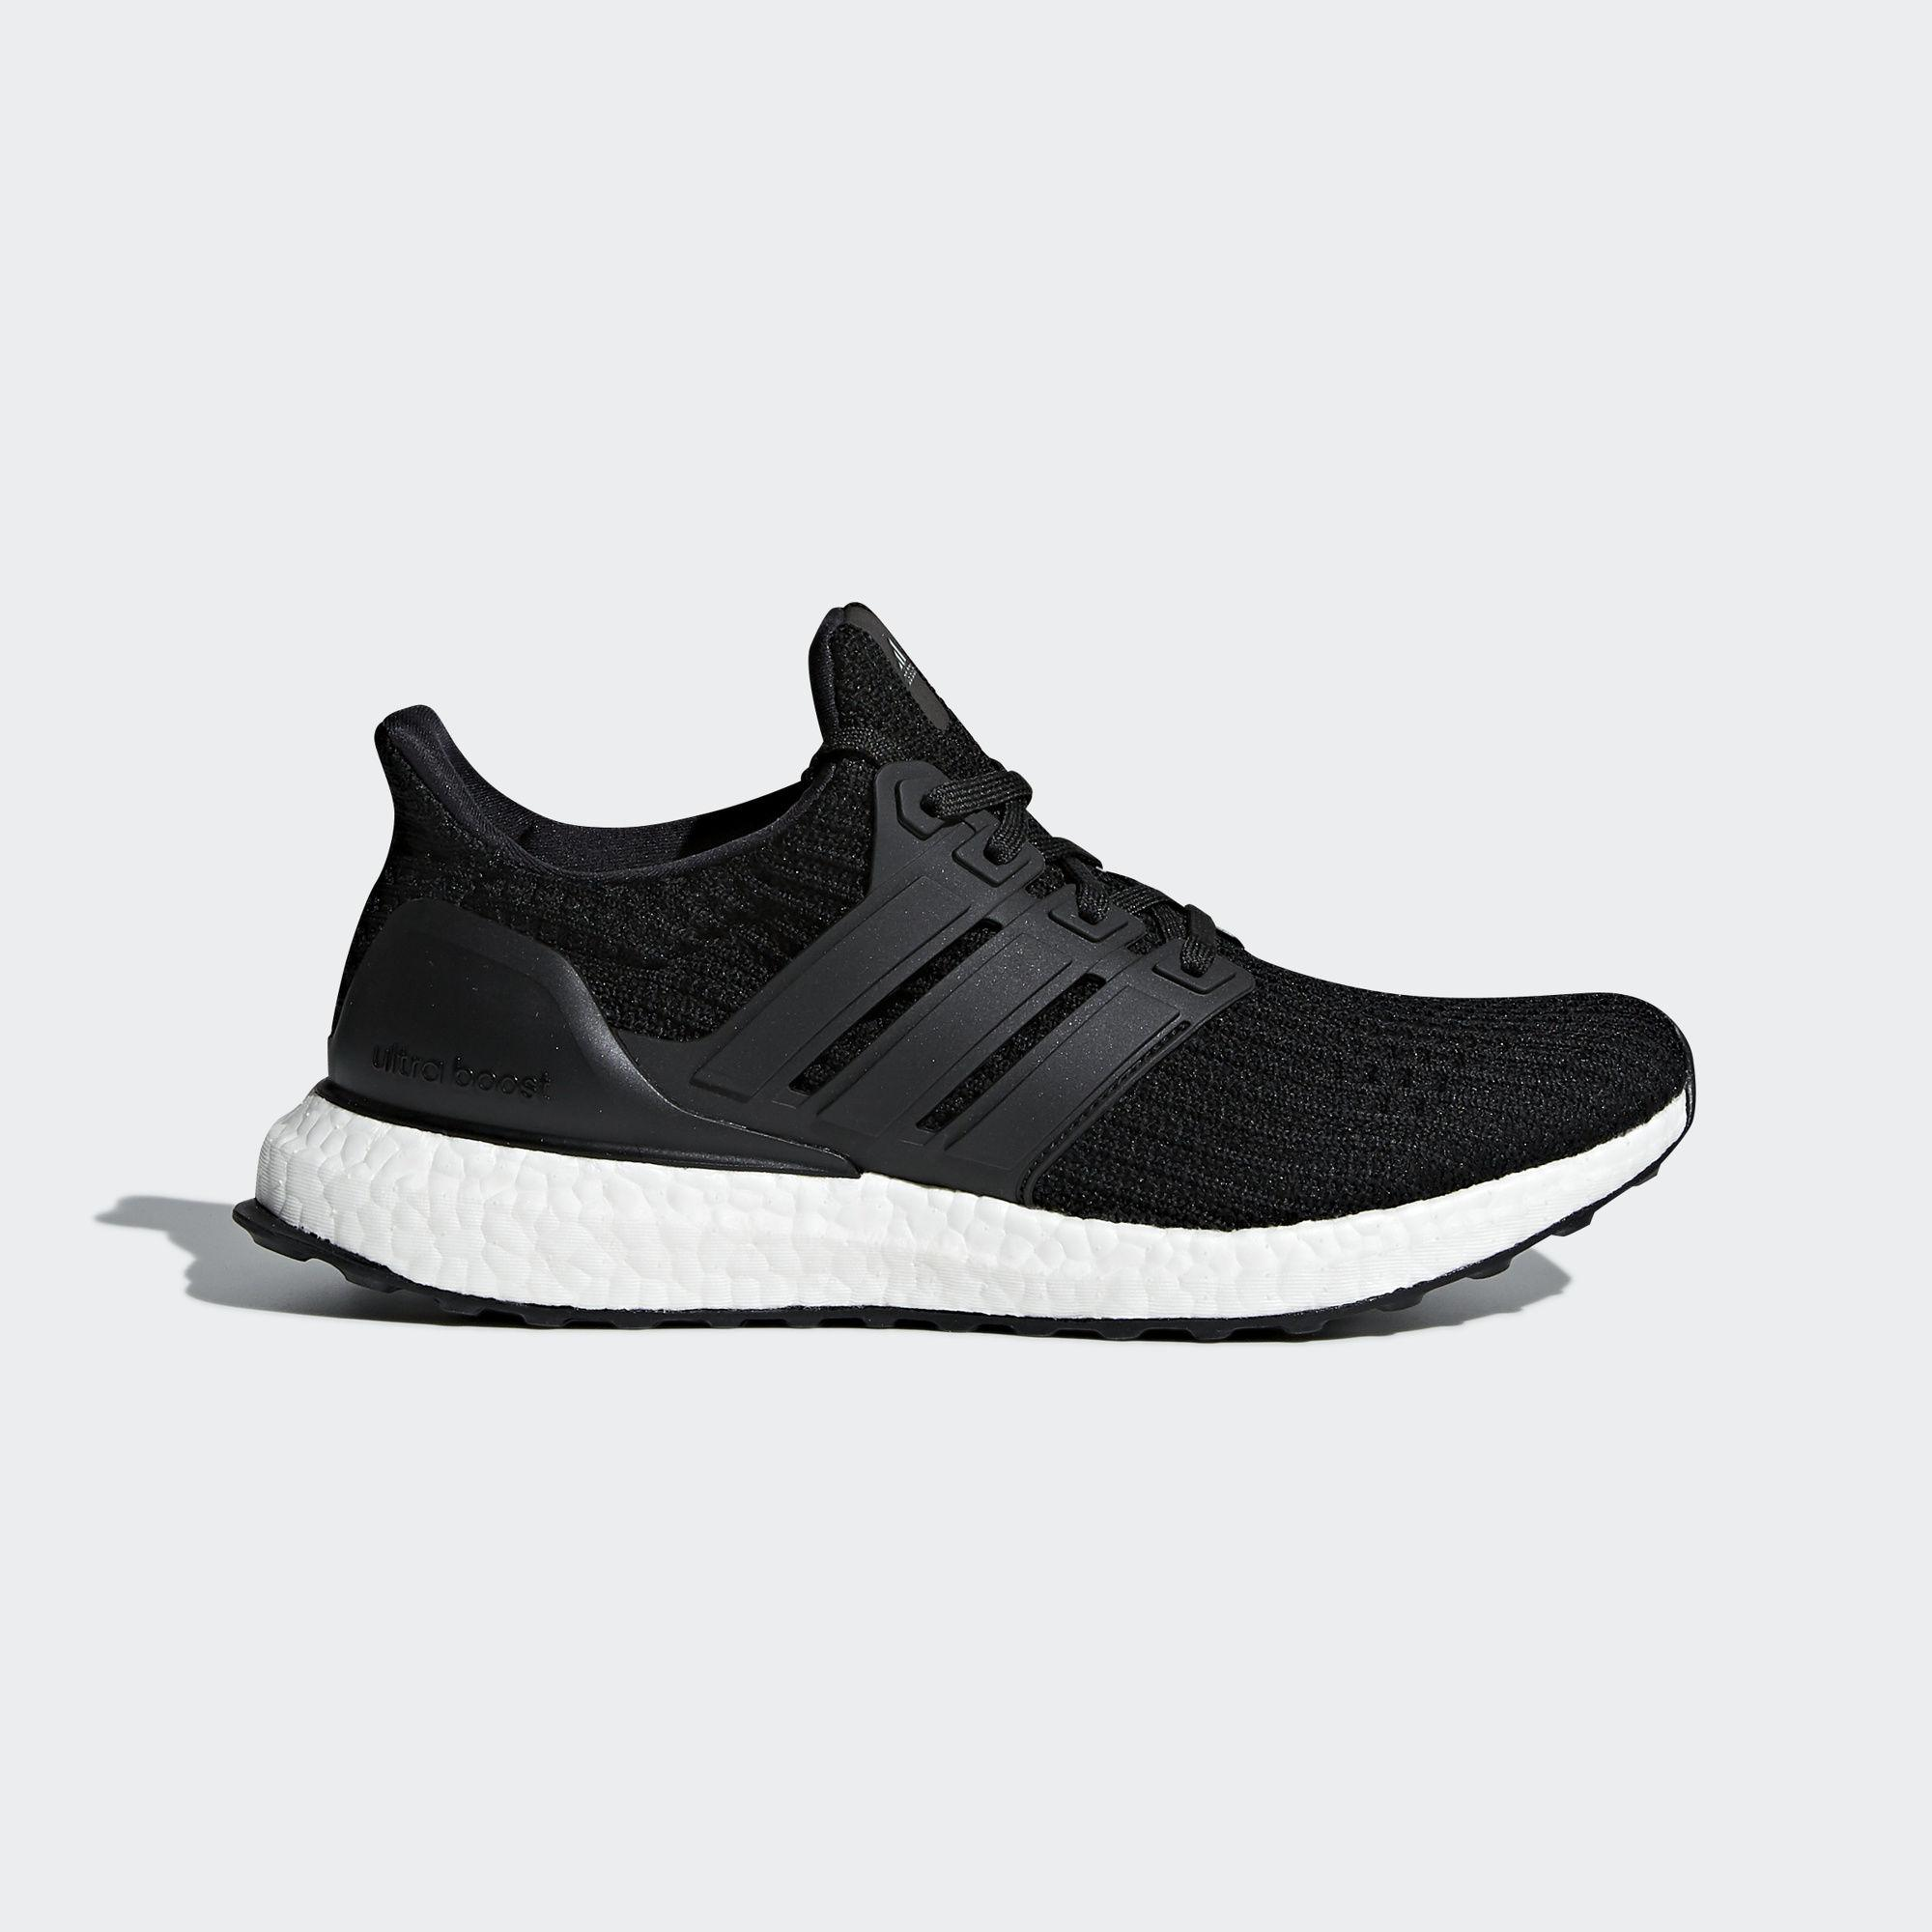 Adidas Womens Ultra Boost Running Shoes - Core Black